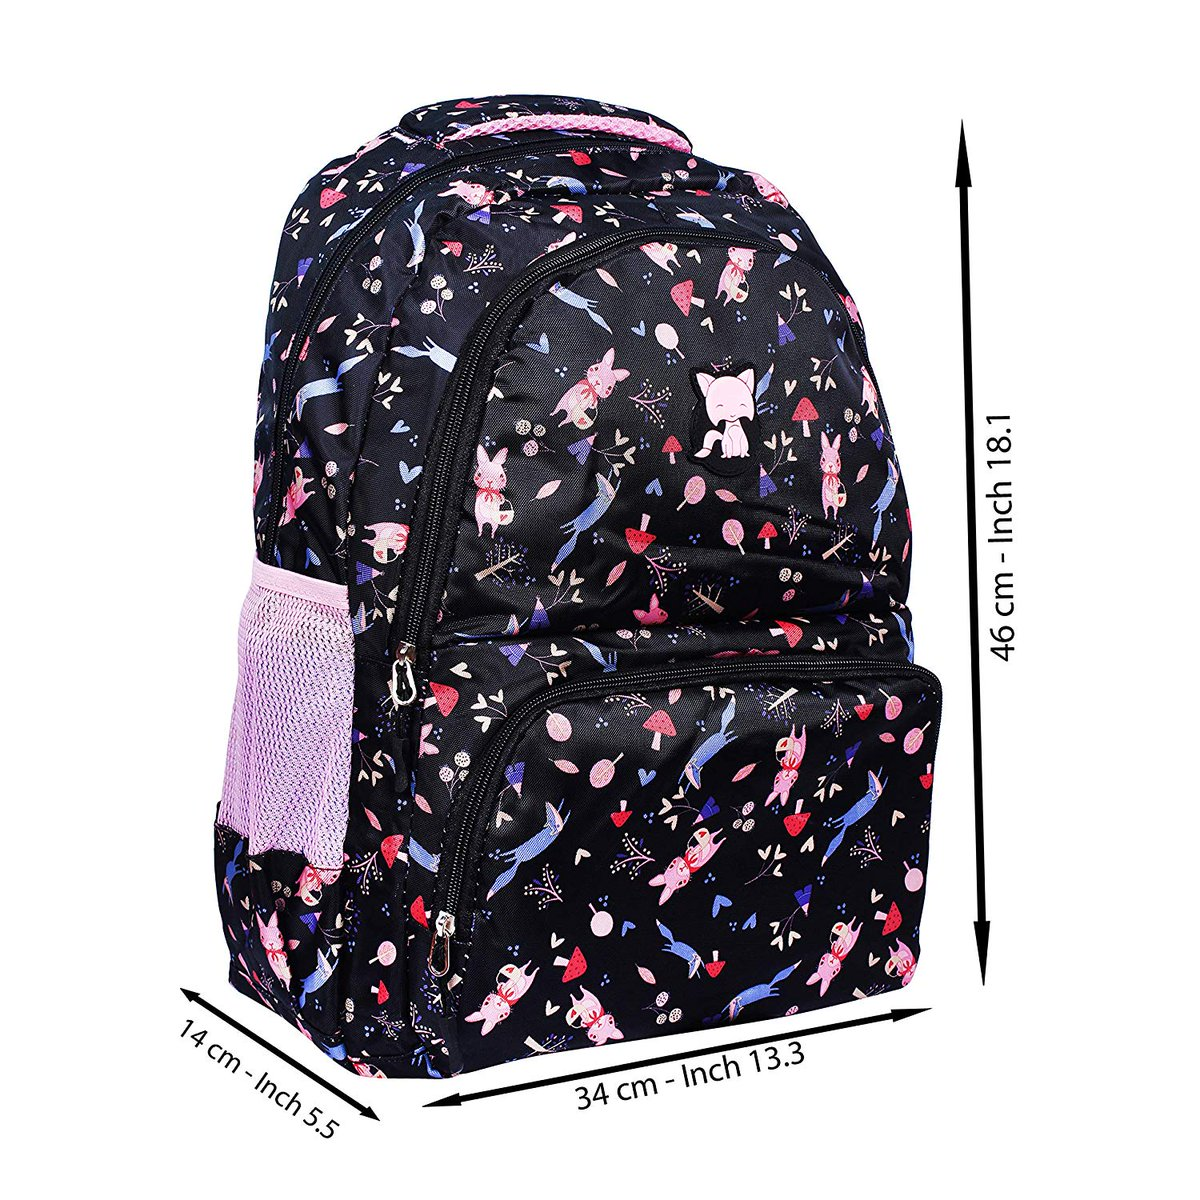 db0d7a0a52f6 Zilant Water-Resistant  Casual  School  College  Backpack with Padded Strap  for  Girls  Women https   amzn.to 2CfeW7x pic.twitter.com tfW4HuaeqJ